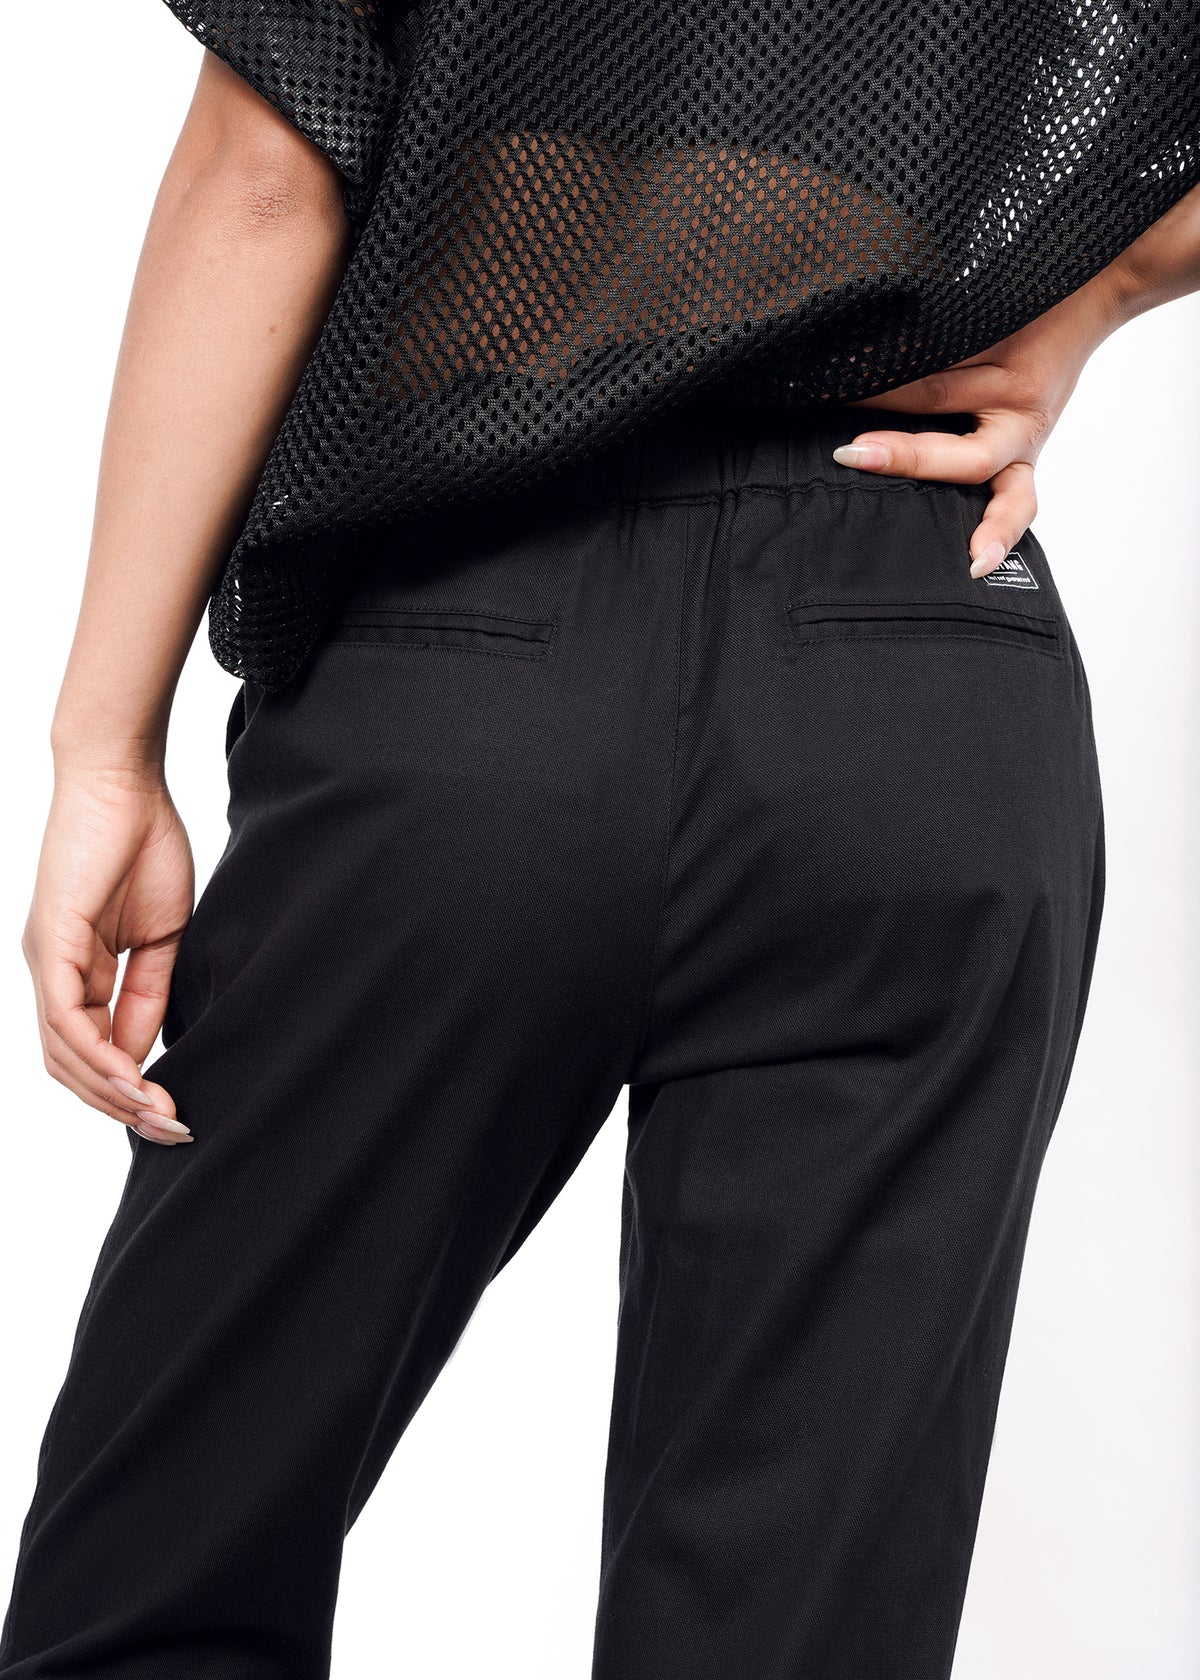 Back closeup view of black drawstring pant on secondary model, shows two pockets